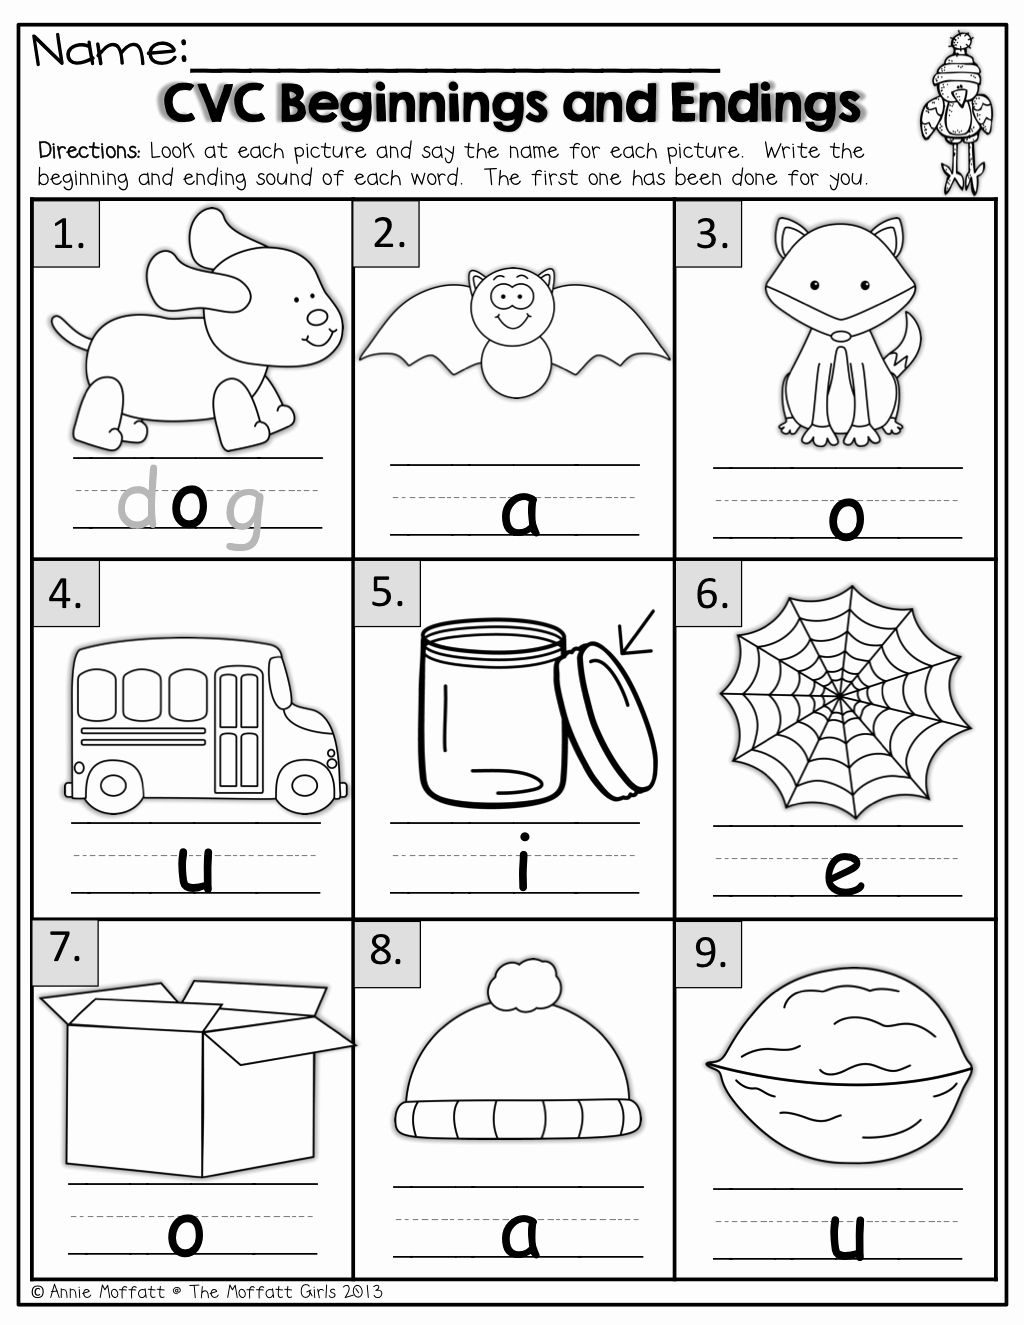 Worksheets For Kindergarten Cvc Words Servicenumber